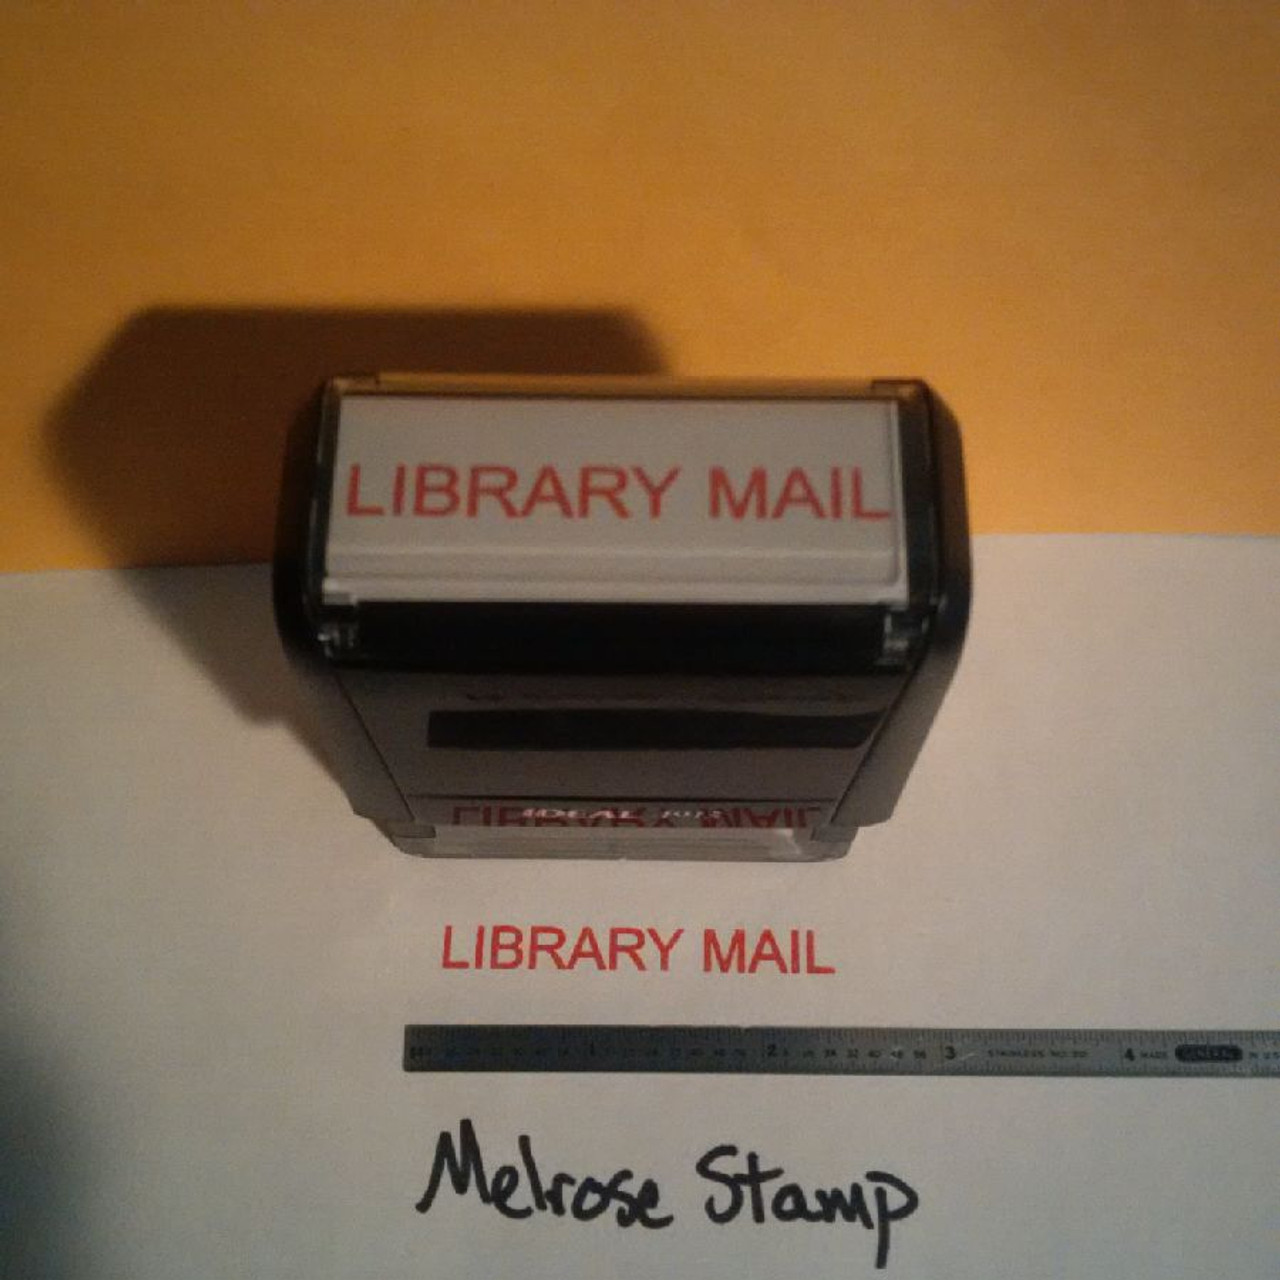 LIBRARY MAIL Rubber Stamp for mail use self-inking